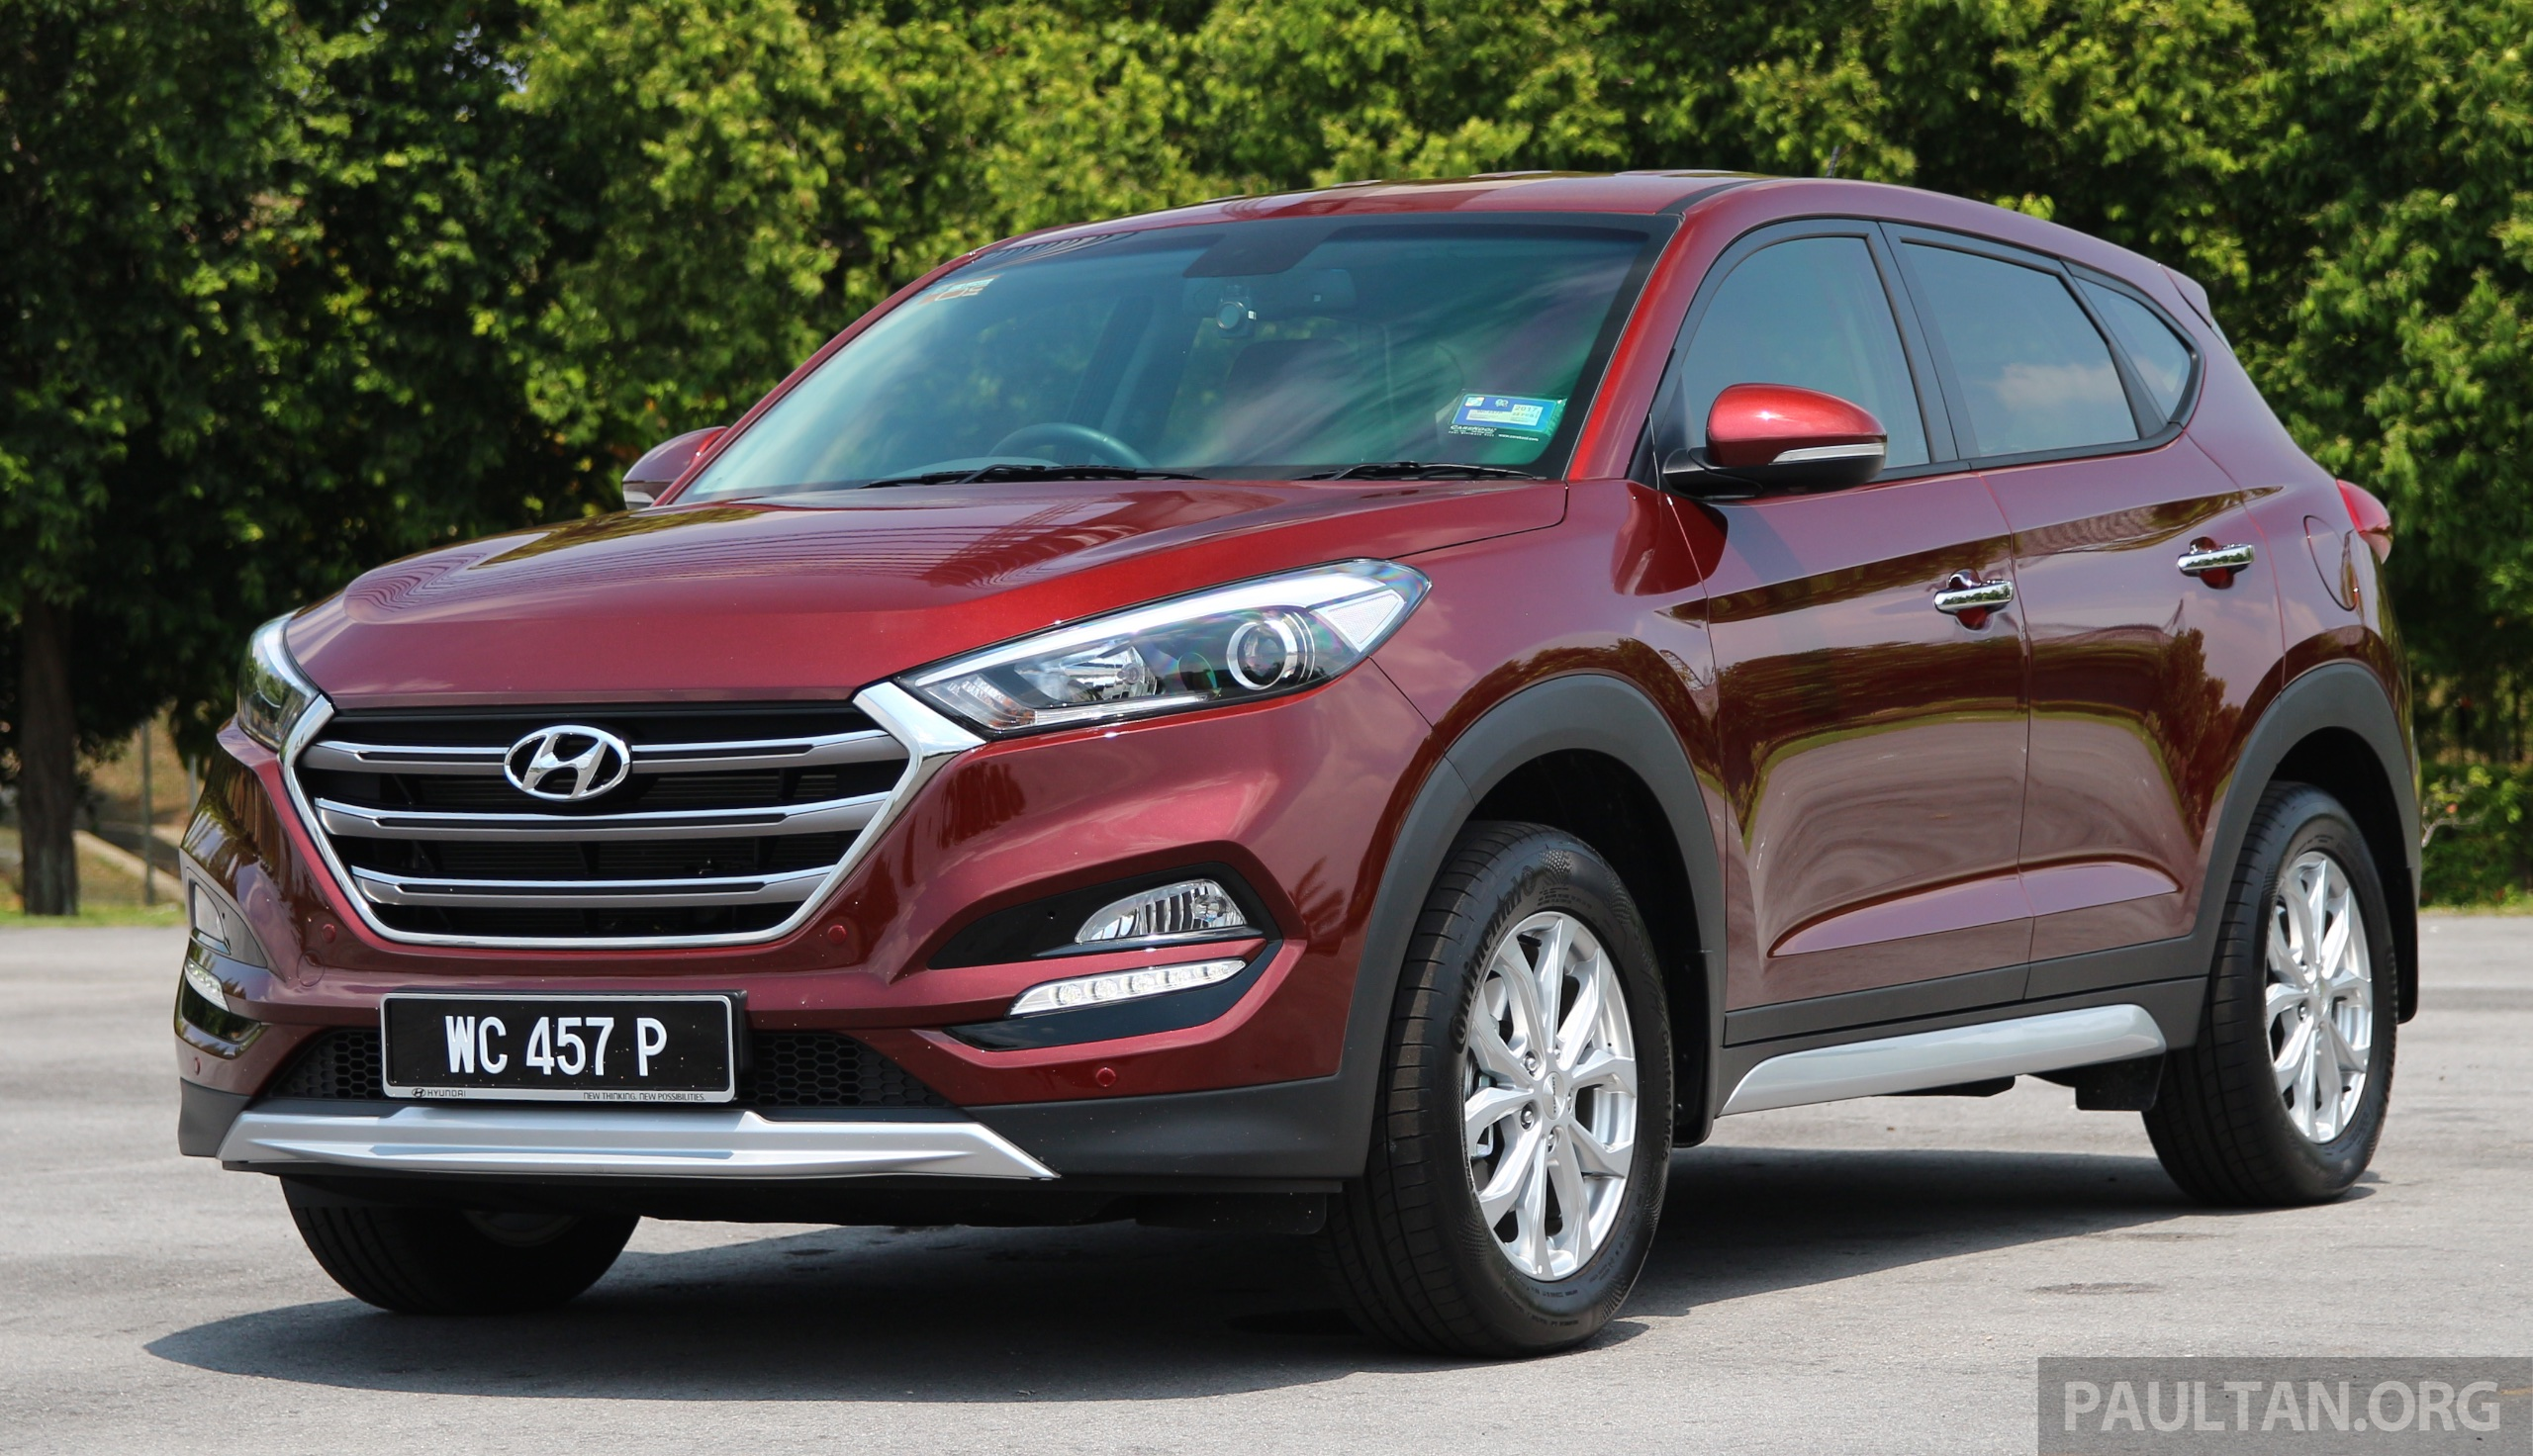 hyundai tucson 1 6 t gdi turbo and 2 0 crdi diesel variants coming to malaysia in q1 2017. Black Bedroom Furniture Sets. Home Design Ideas